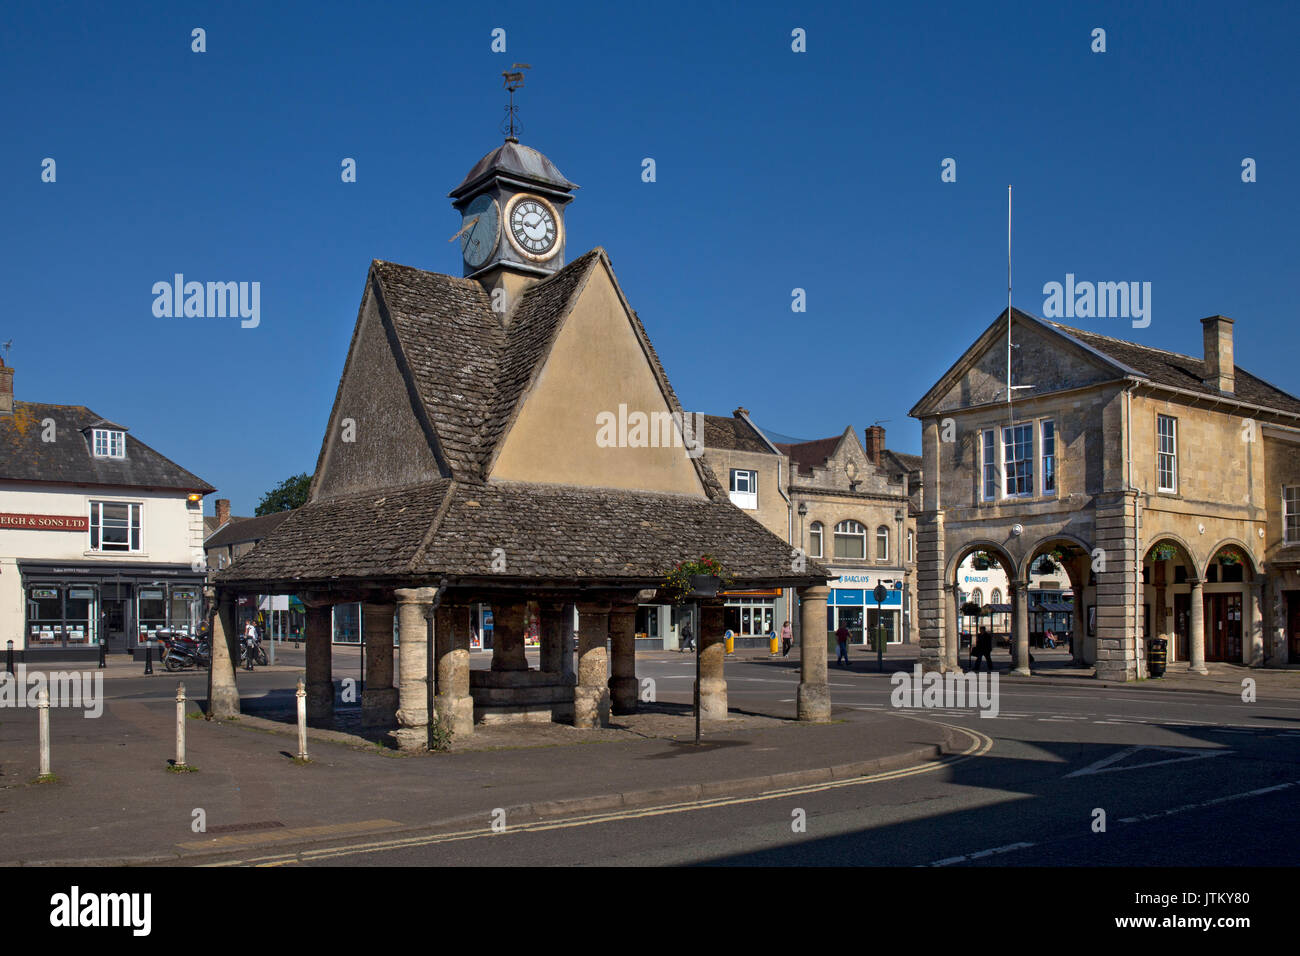 Buttercross,market Square,Witney,Oxfordshire,England - Stock Image